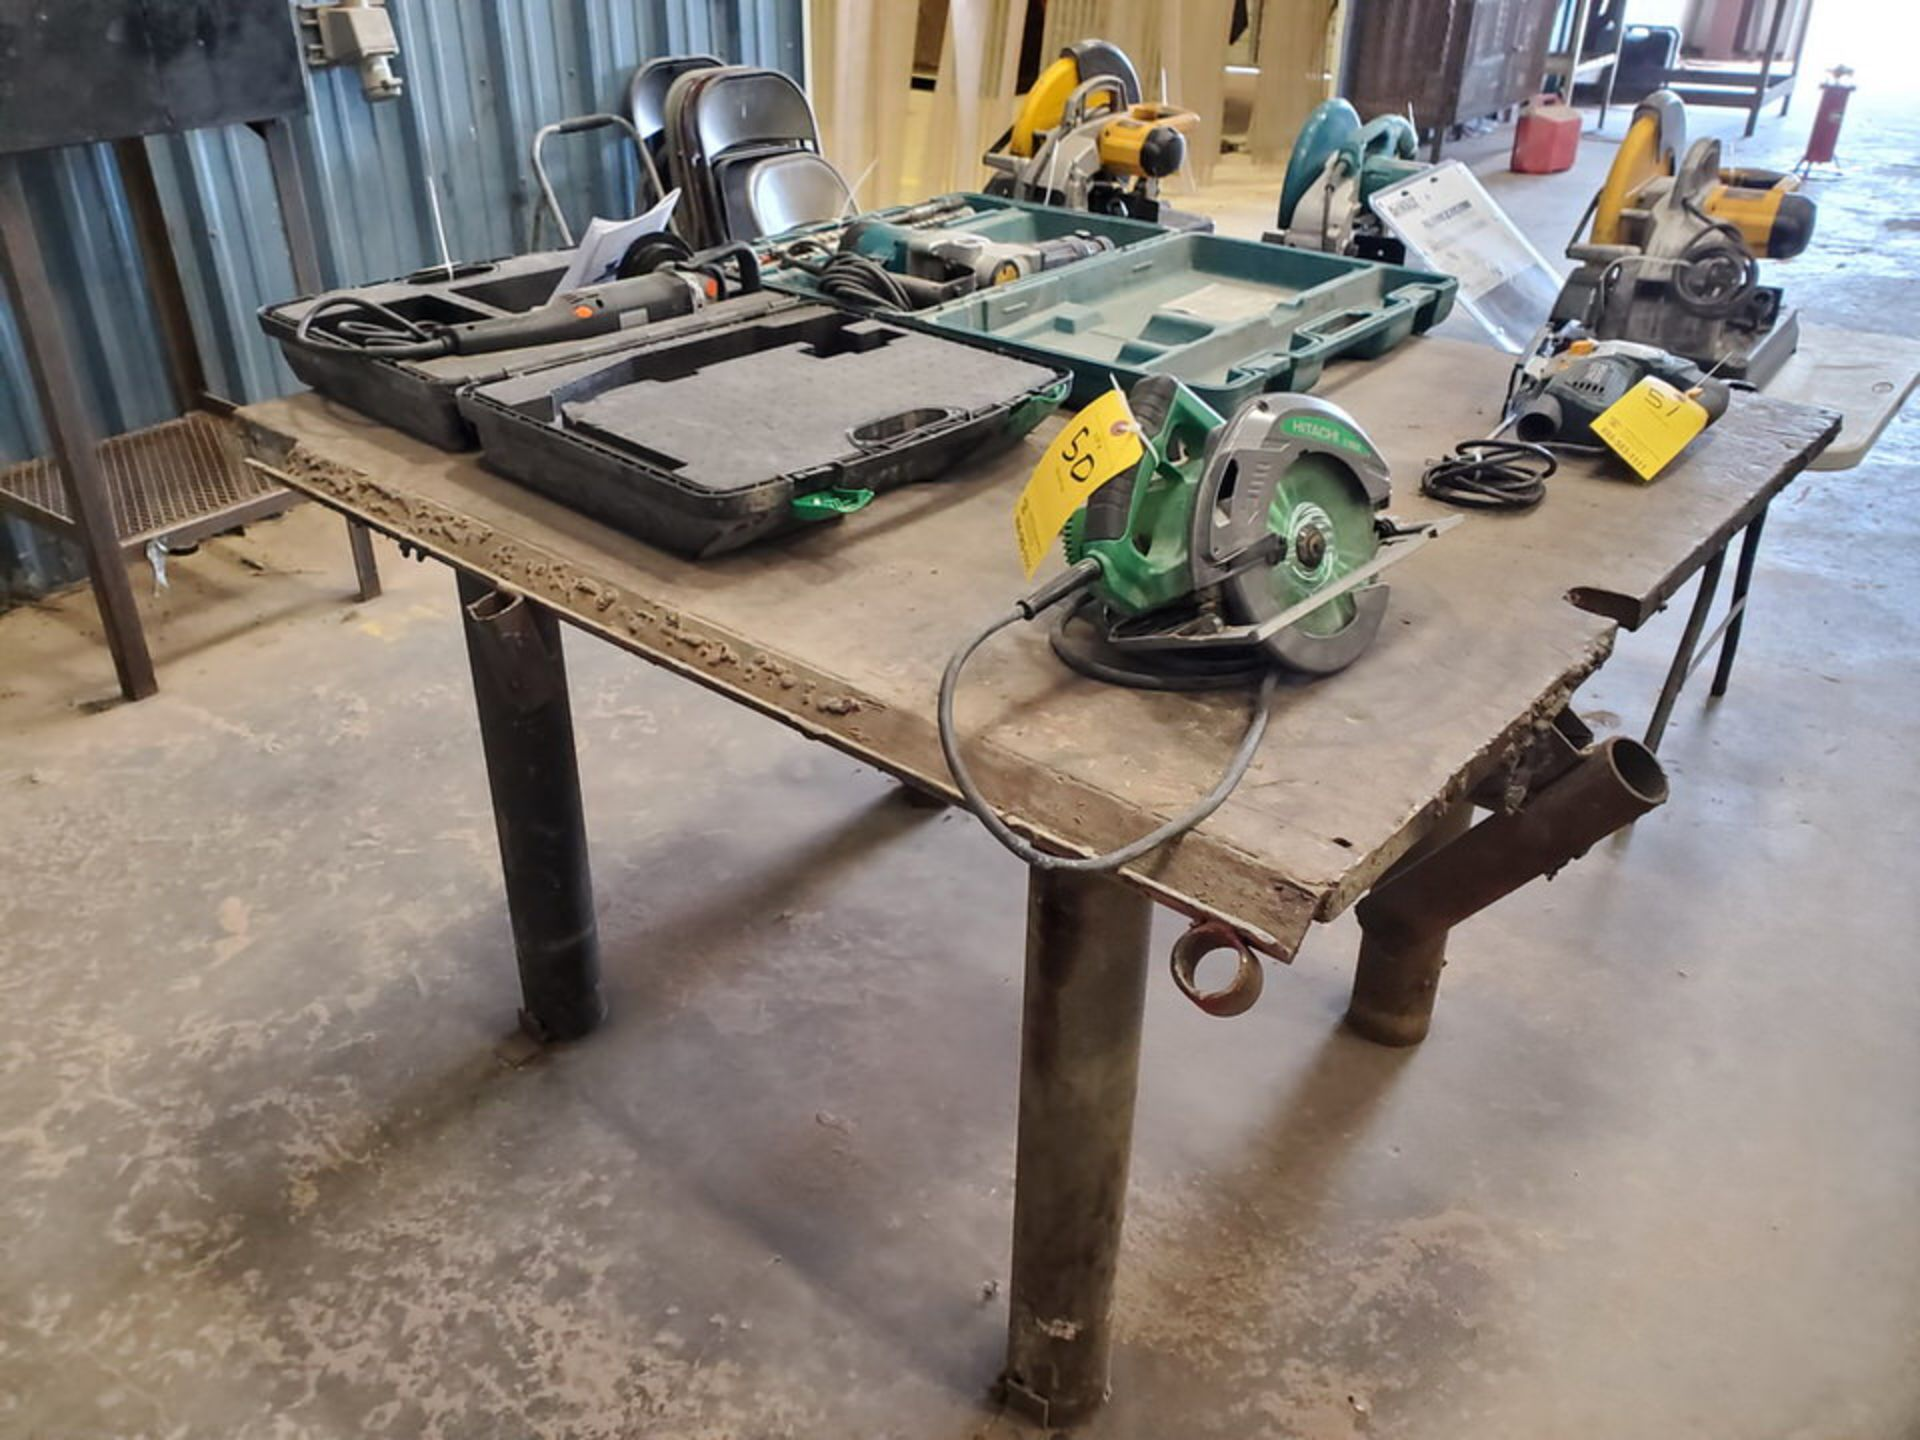 """(2) Stl Welding Tables (1) 72"""" x 72"""" x 37'H; (1) 51"""" x 54"""" x 37""""H - Image 6 of 8"""